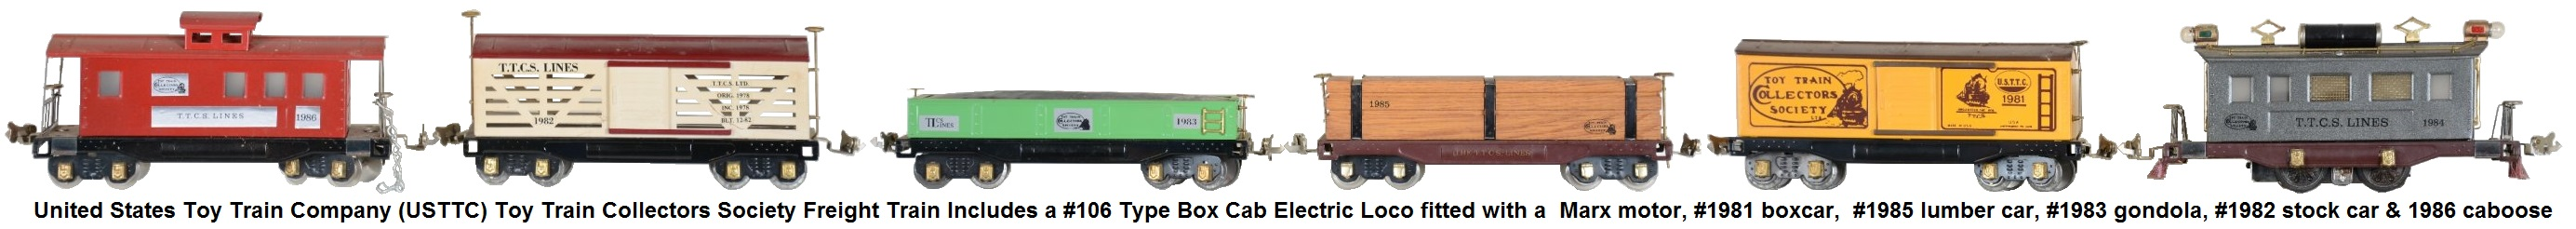 USTTC Toy Train Collectors Society freight train includes a #1983 gondola, #1981 box car, #1982 stock car, #1985 flat car with lumber load, #1986 caboose, and #1984 box cab electric locomotive